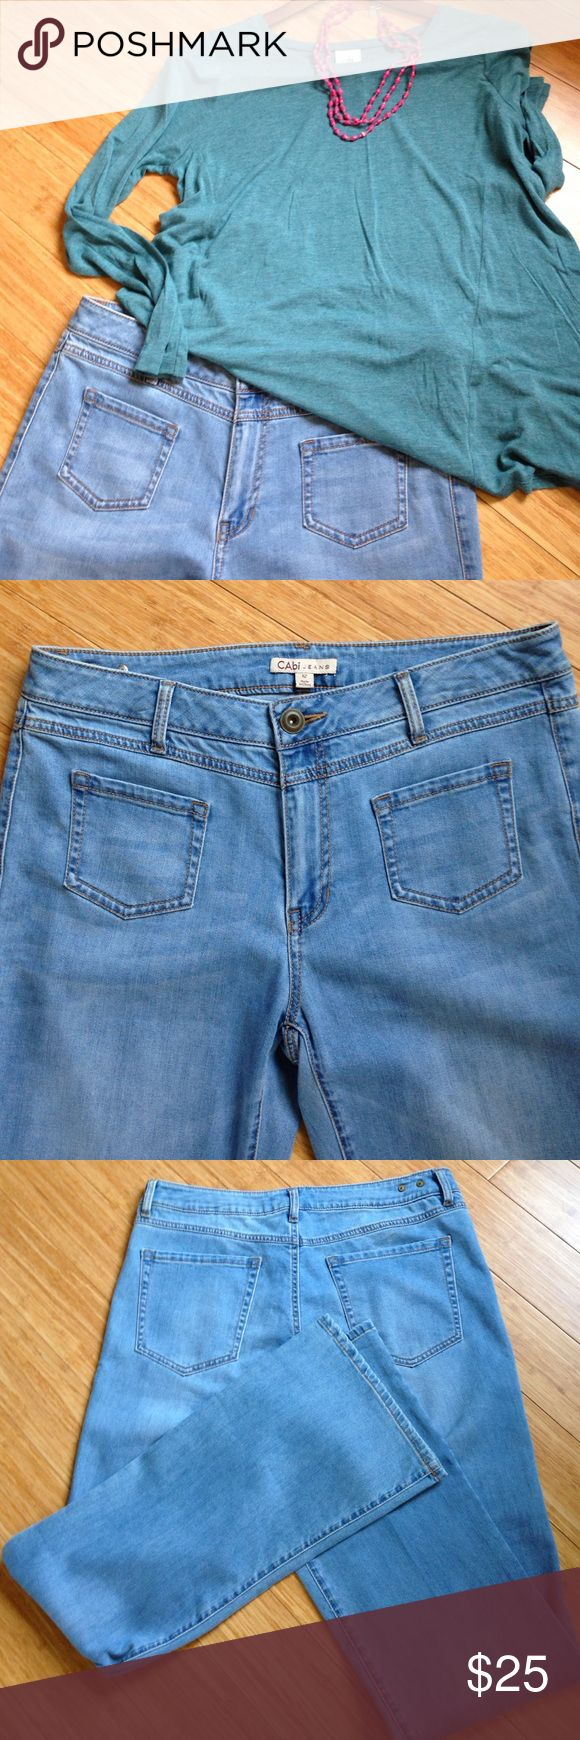 CAbi Malibu Light Denim Jeans, Size 12 Long Lighter weight denim jeans by CAbi, Style #223L.  Size 12 Long.  EUC.  (Turquoise shirt is listed for sale on a different listing, necklace not for sale) CAbi Jeans